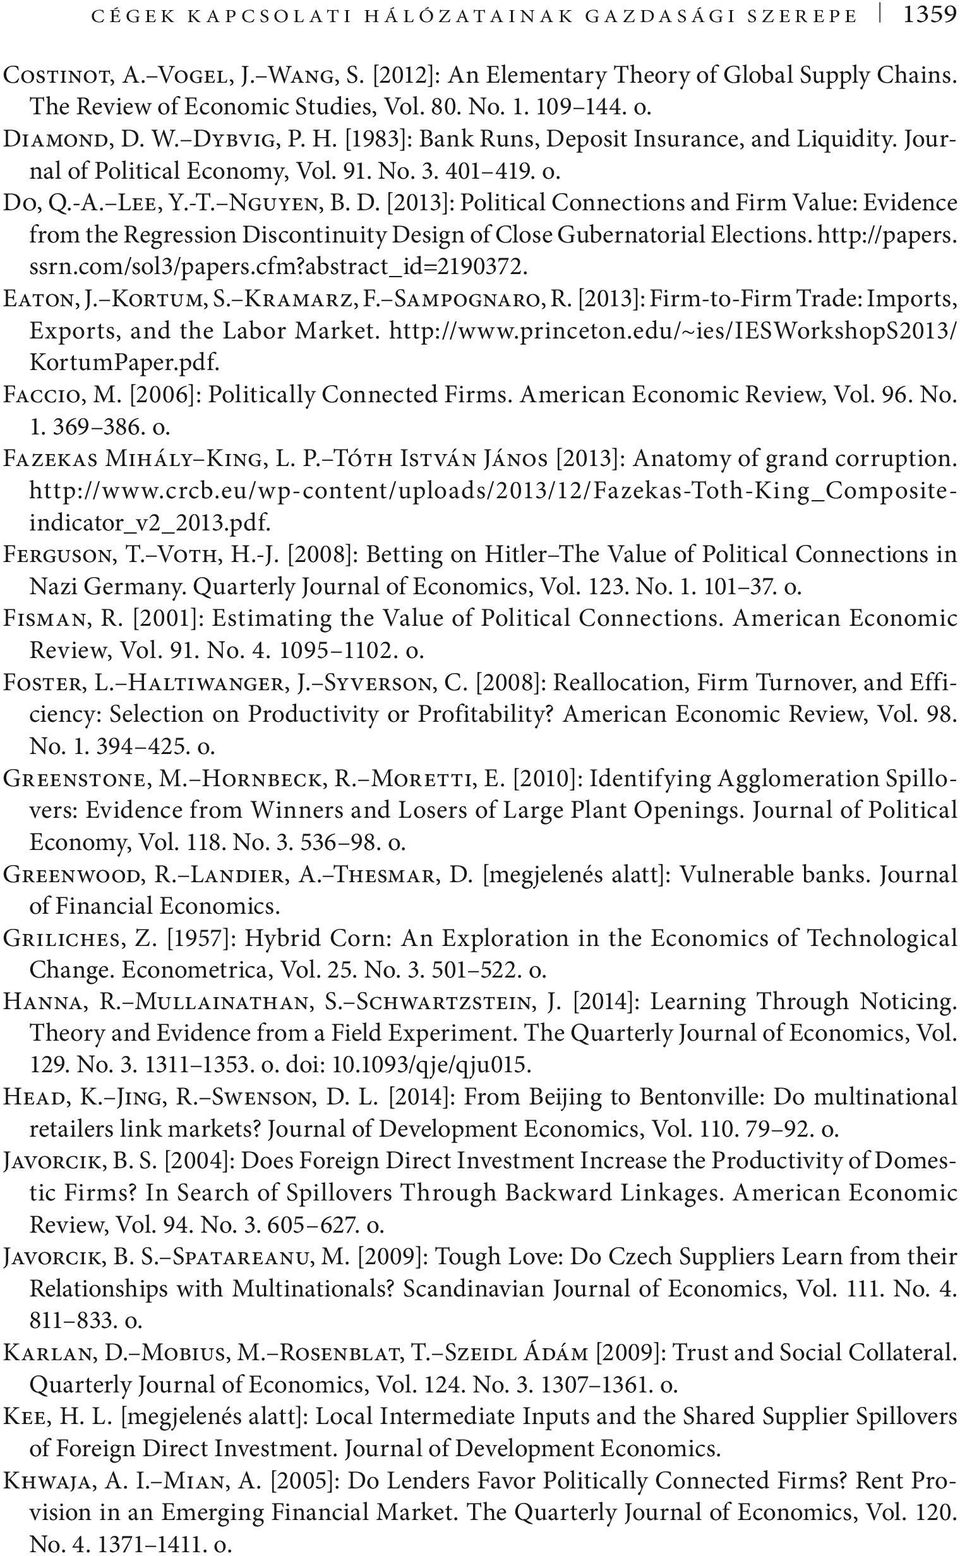 http://papers. ssrn.com/sol3/papers.cfm?abstract_id=2190372. Eaton, J. Kortum, S. Kramarz, F. Sampognaro, R. [2013]: Firm-to-Firm Trade: Imports, Exports, and the Labor Market. http://www.princeton.